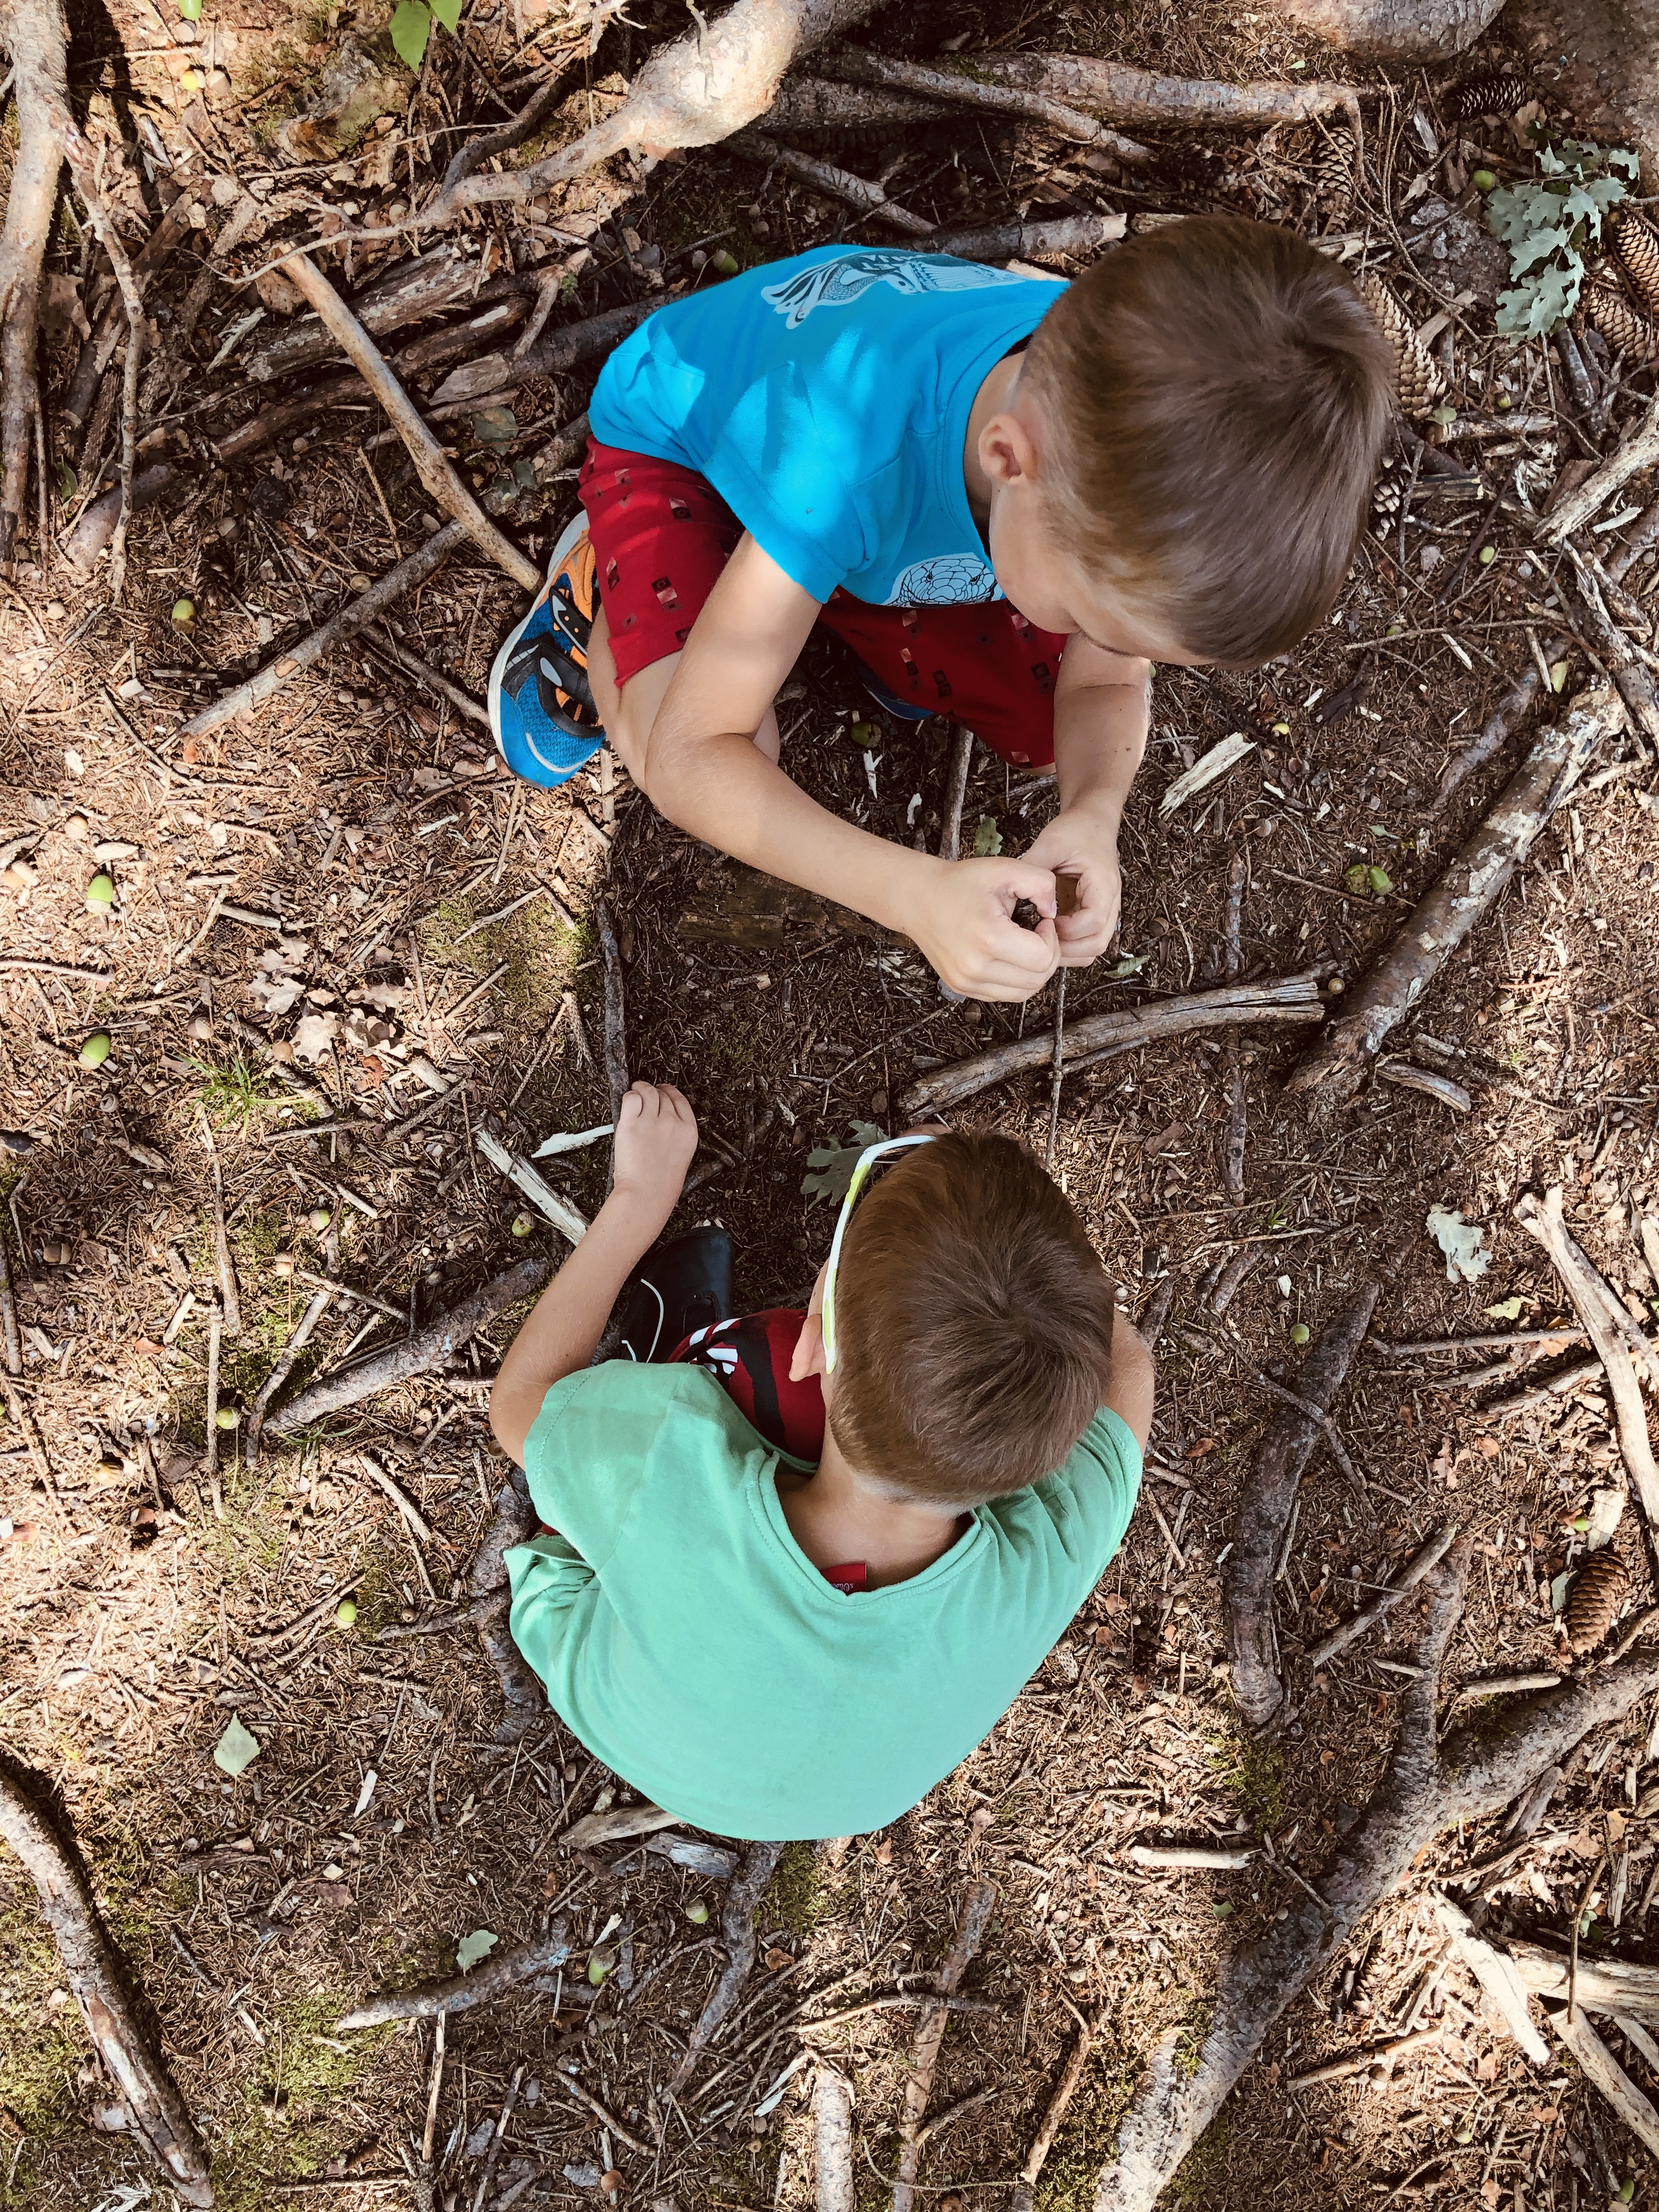 spending time in the forest looking for twigs and maple tree seeds